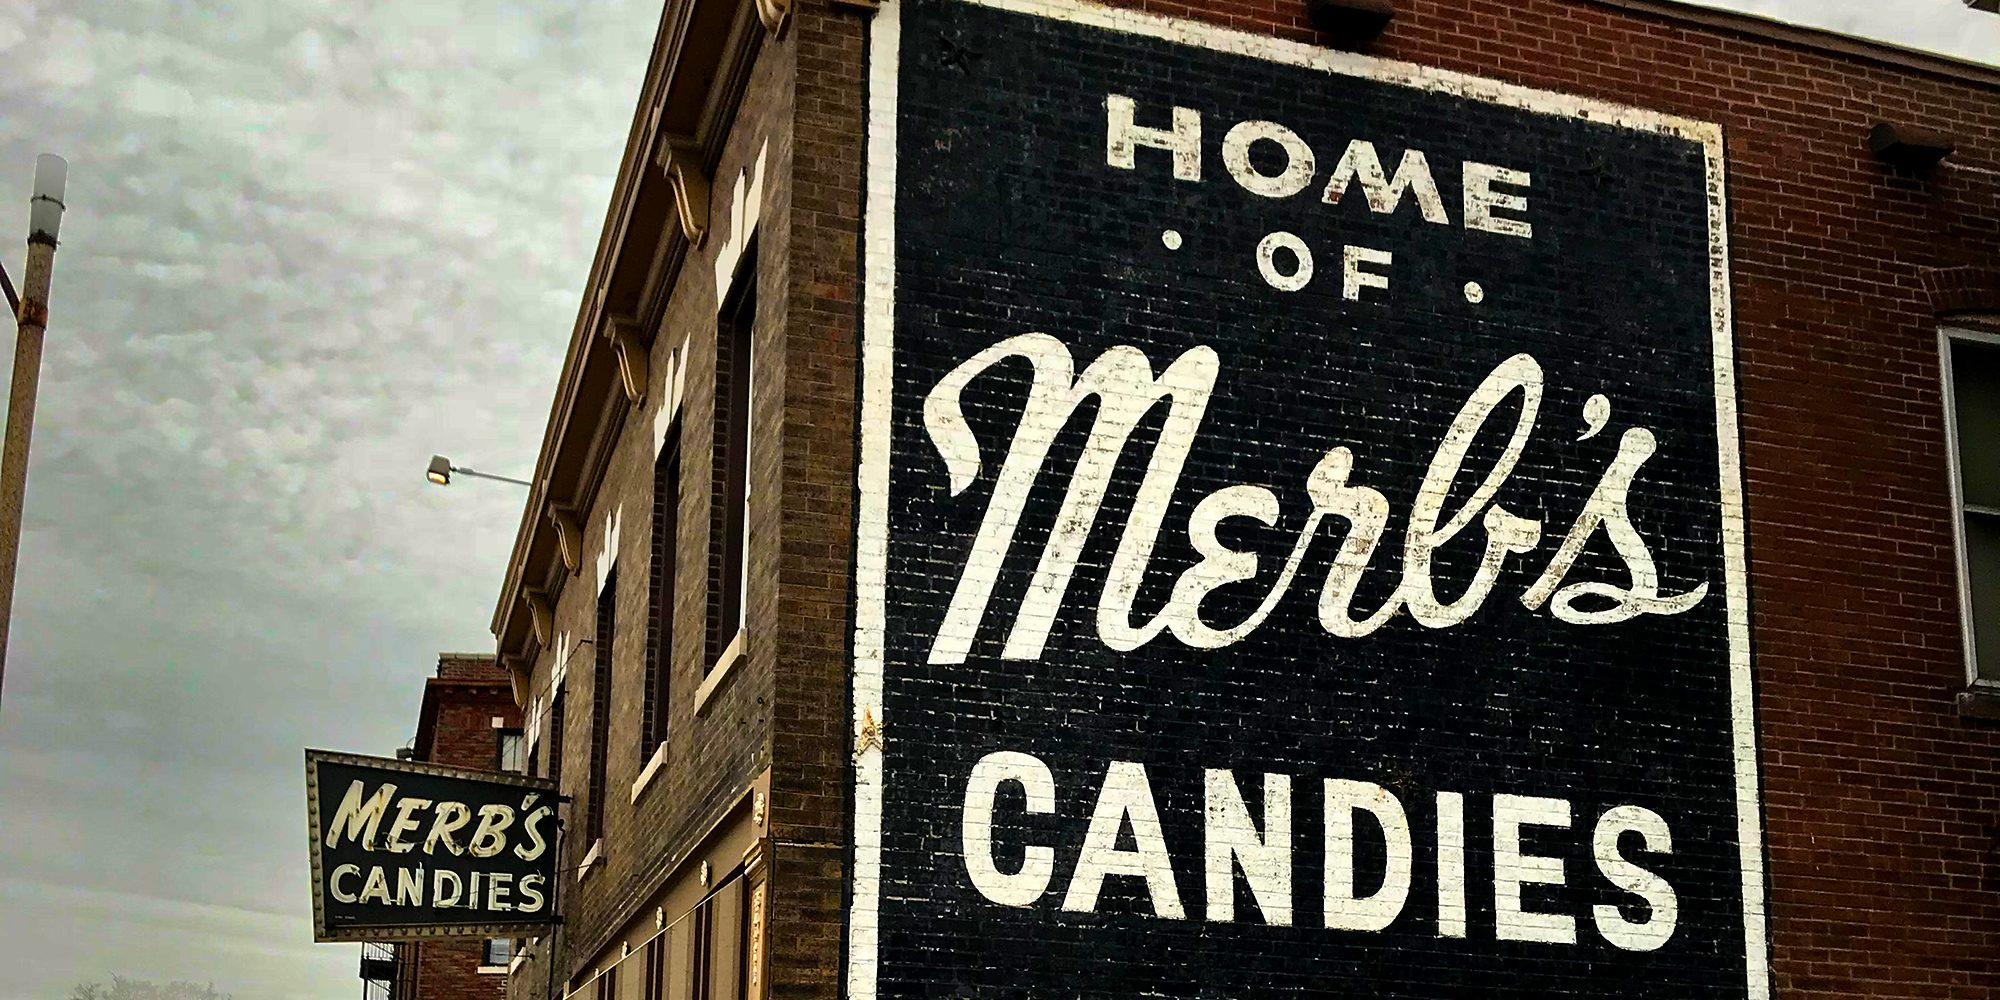 Merb's Candies on South Grand in Dutchtown, St. Louis, MO.